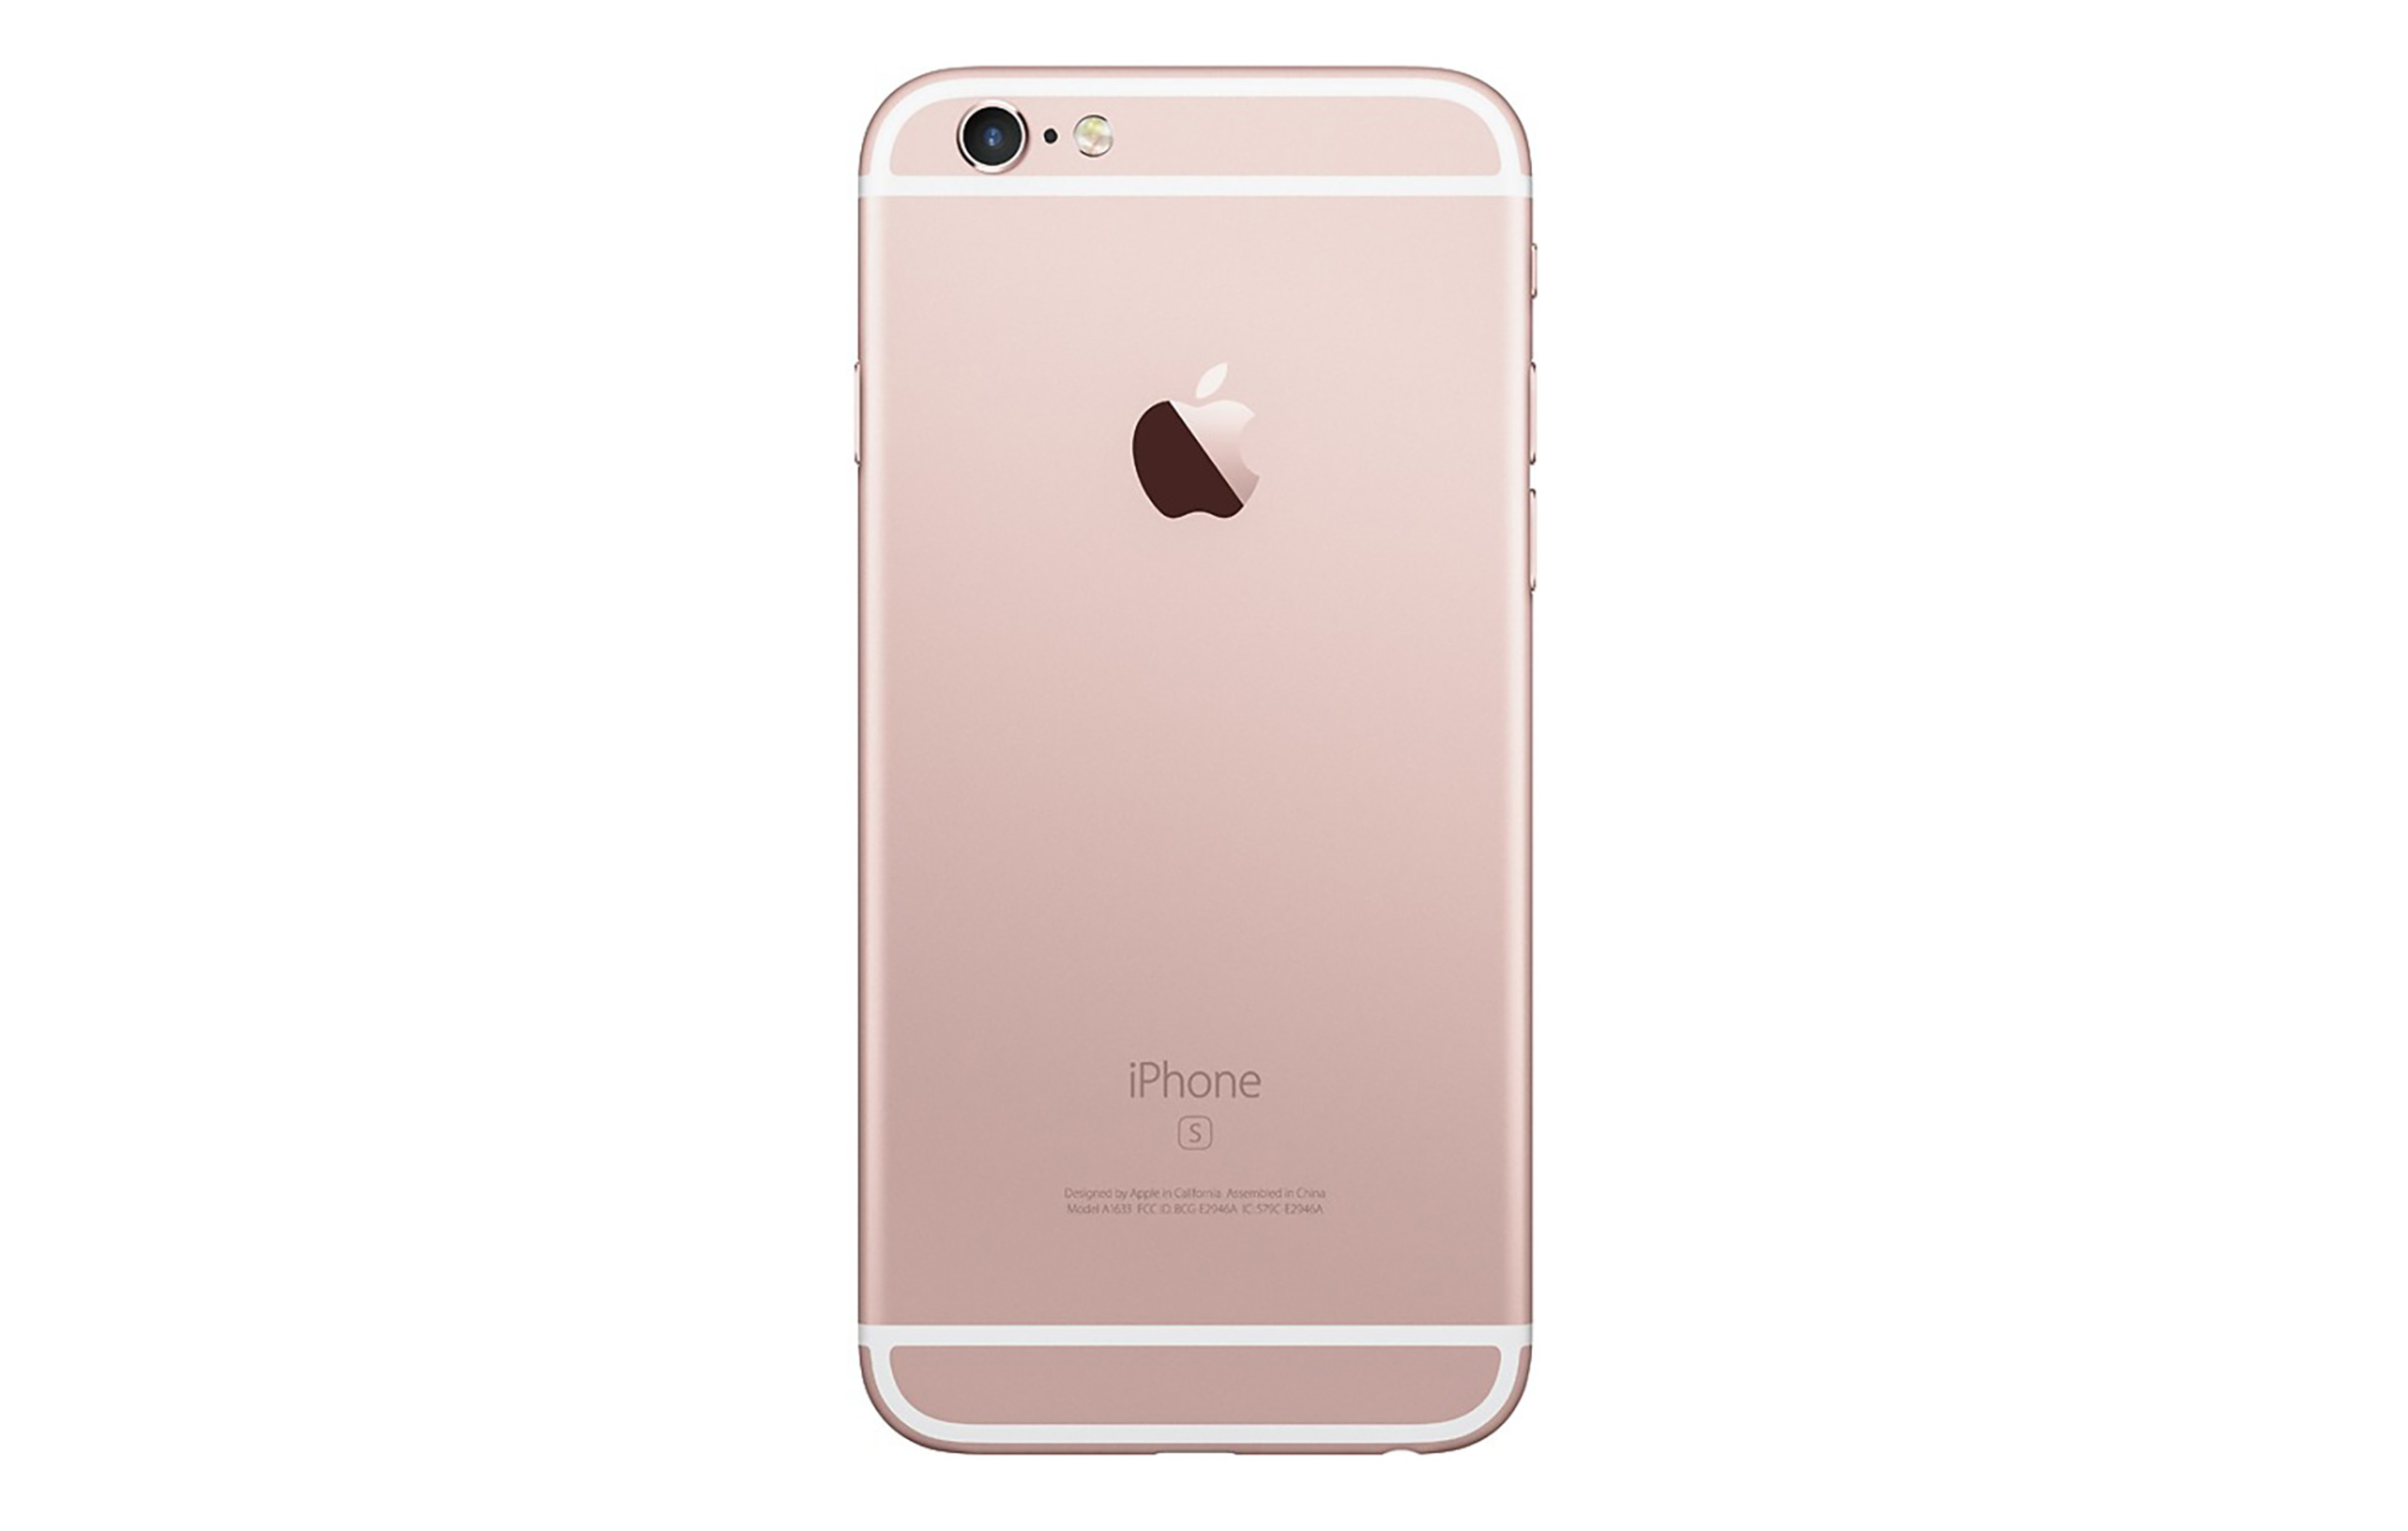 Apple Iphone C Virgin Mobile